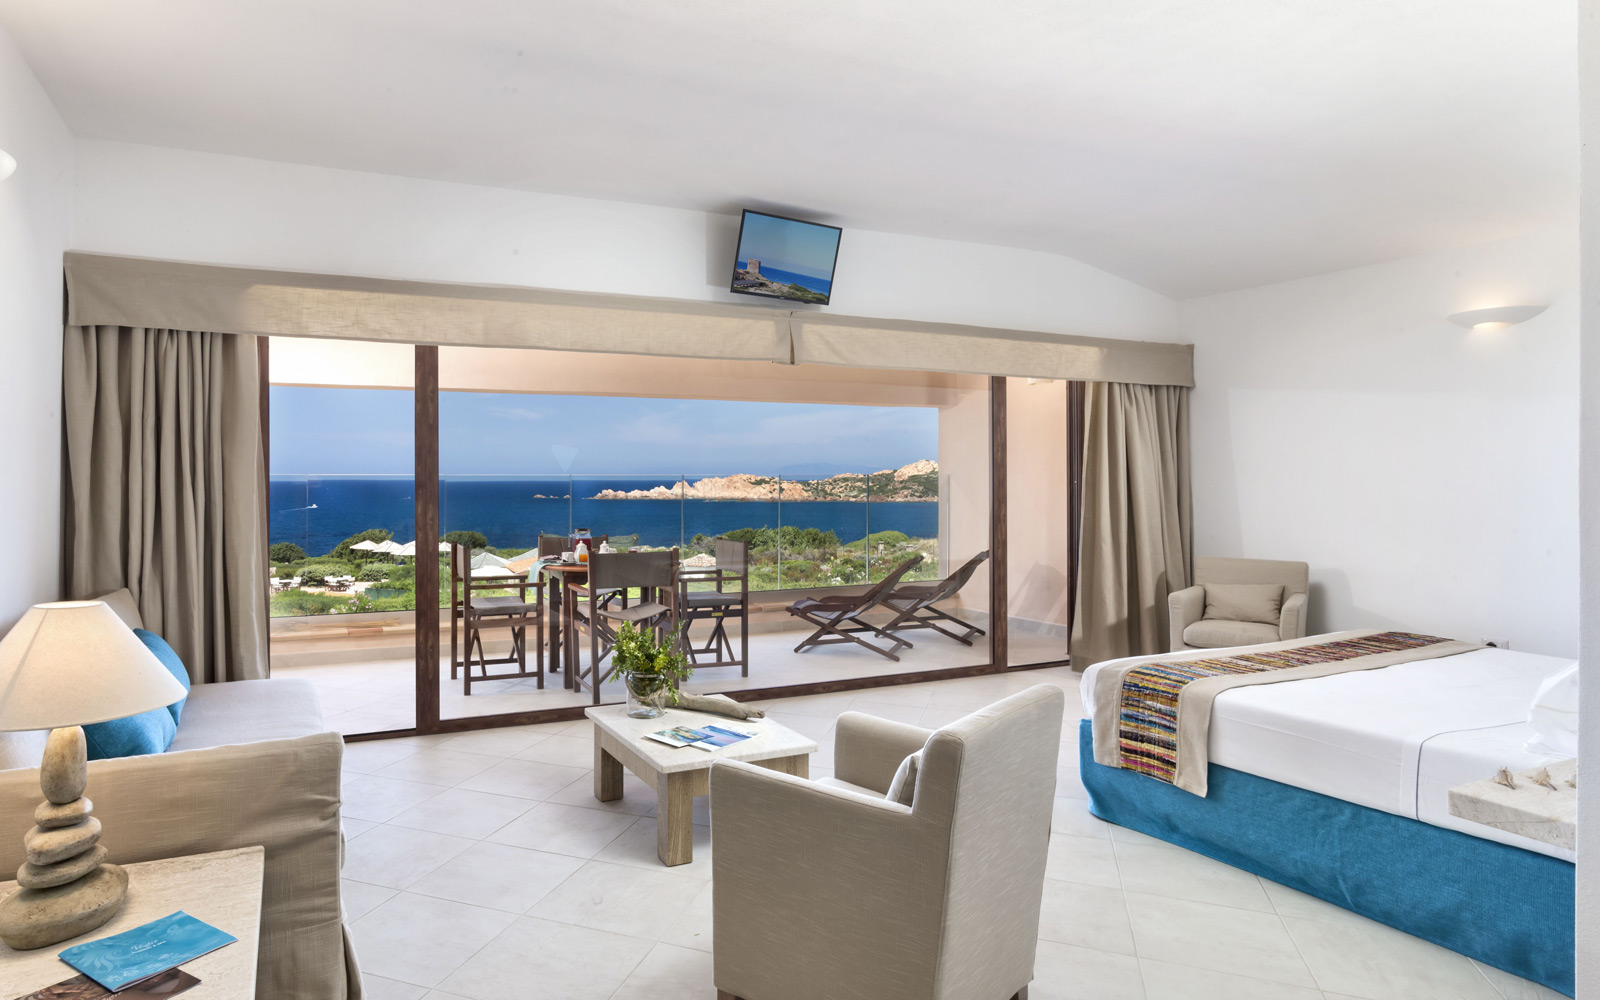 Executive Room at Hotel Relax Torreruja Thalasso & Spa